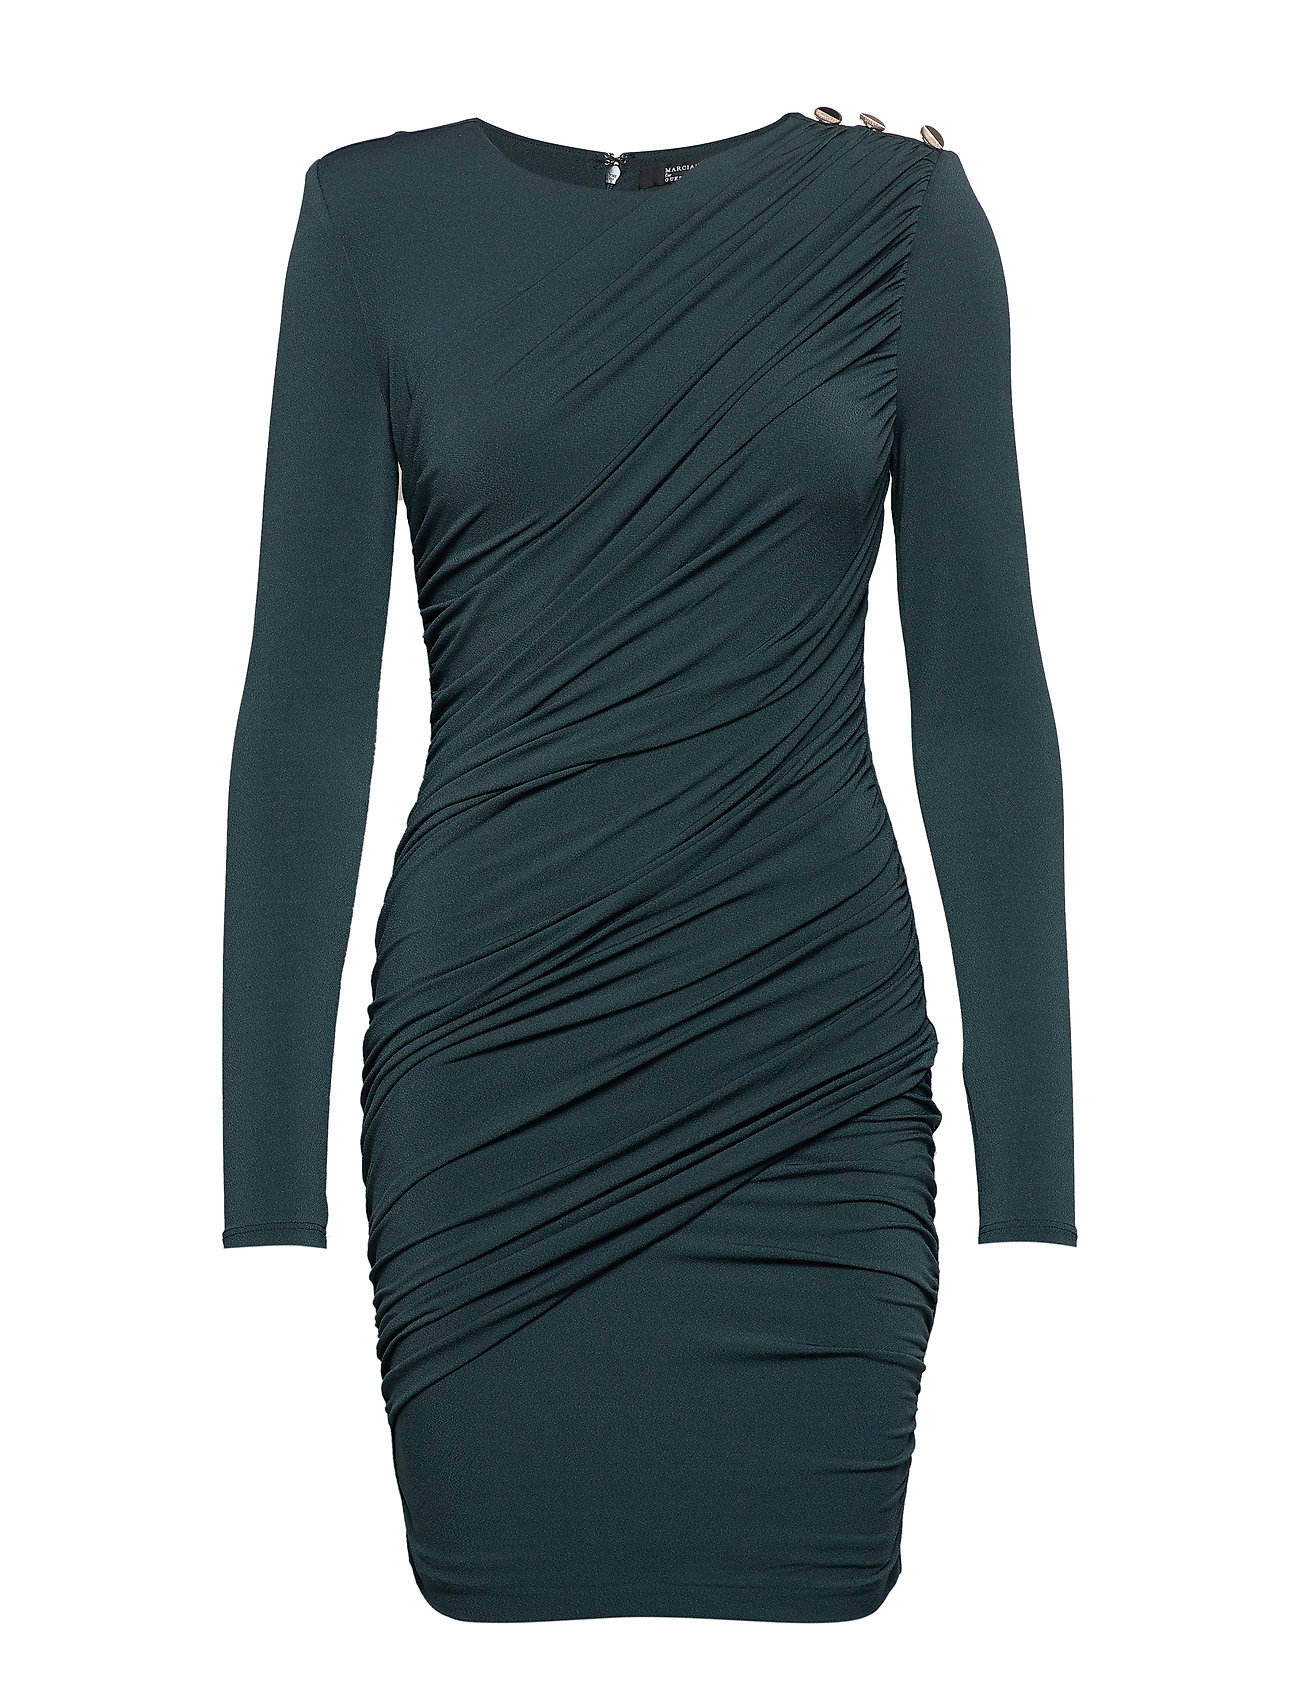 Marciano by GUESS HEY BABY DRESS - MYSTIC